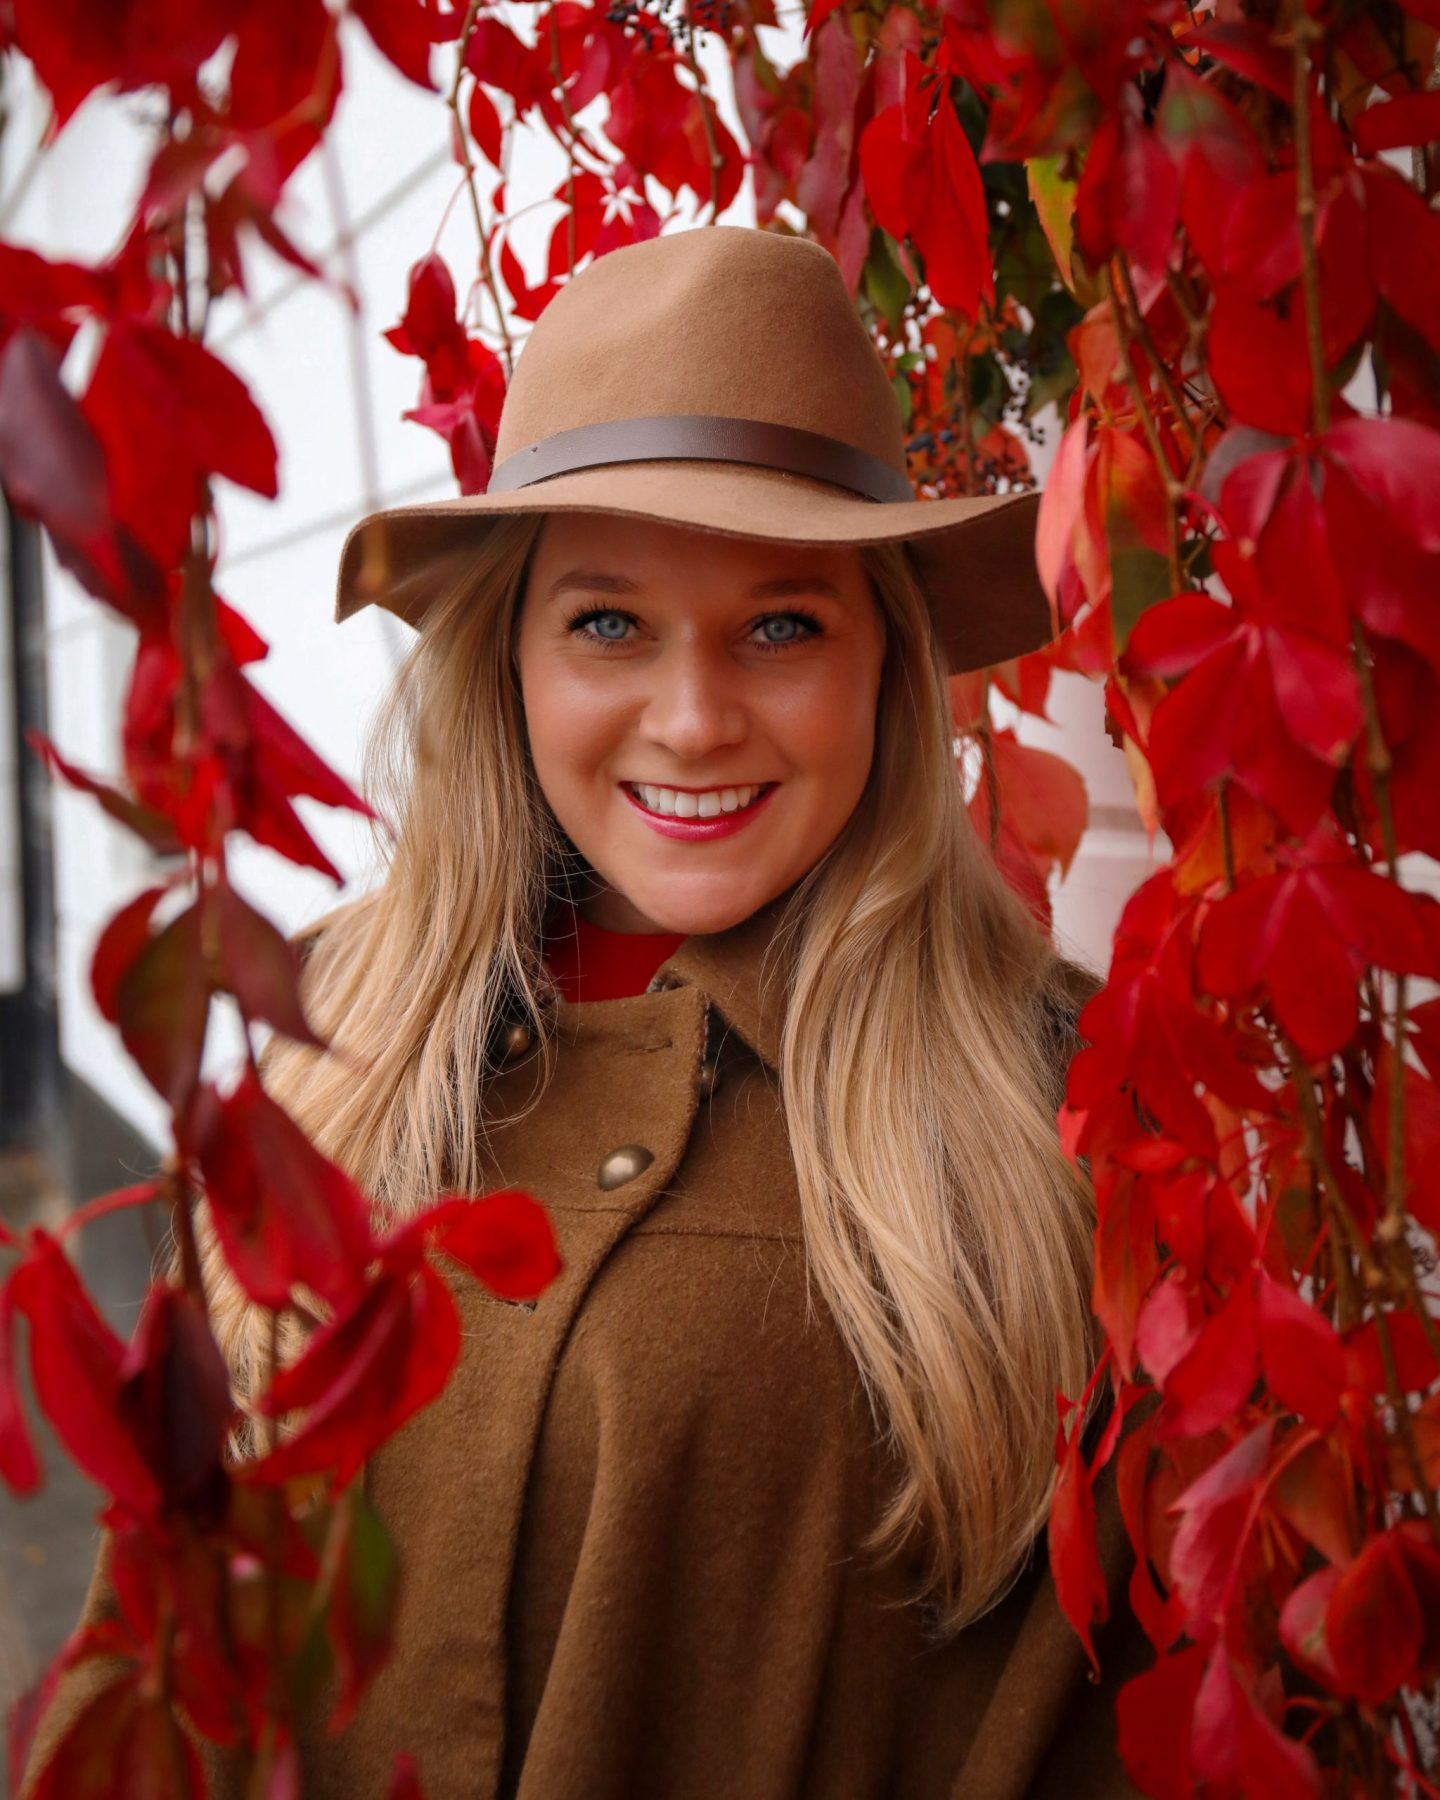 Katie Heath KALANCHOE blonde girl wearing hat and cape at Kynance Mews in Kensington London